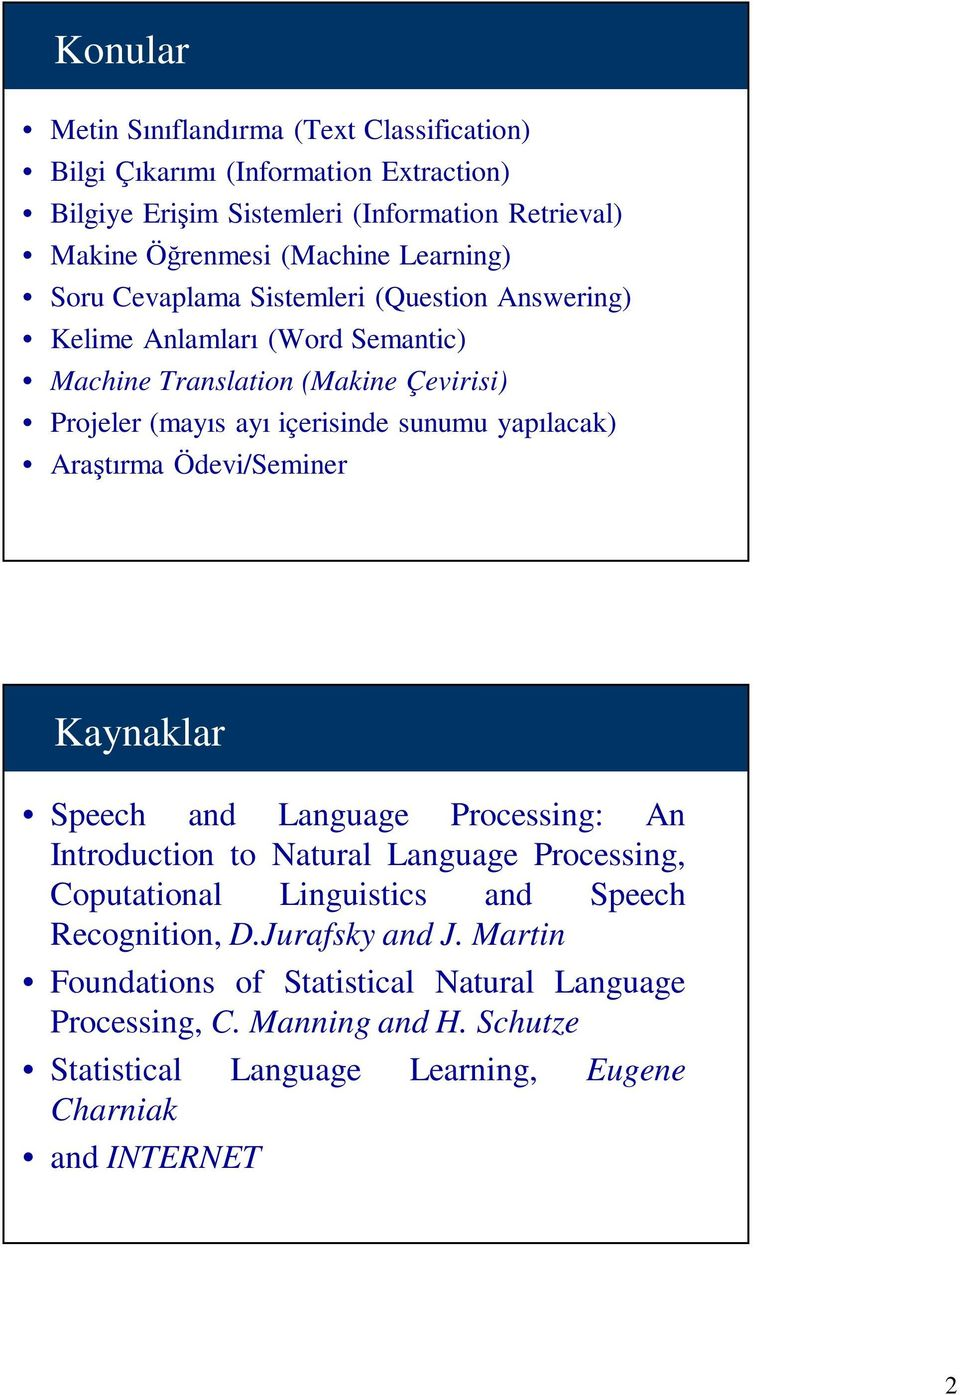 yapılacak) Araştırma Ödevi/Seminer Kaynaklar Speech and Language Processing: An Introduction to Natural Language Processing, Coputational Linguistics and Speech